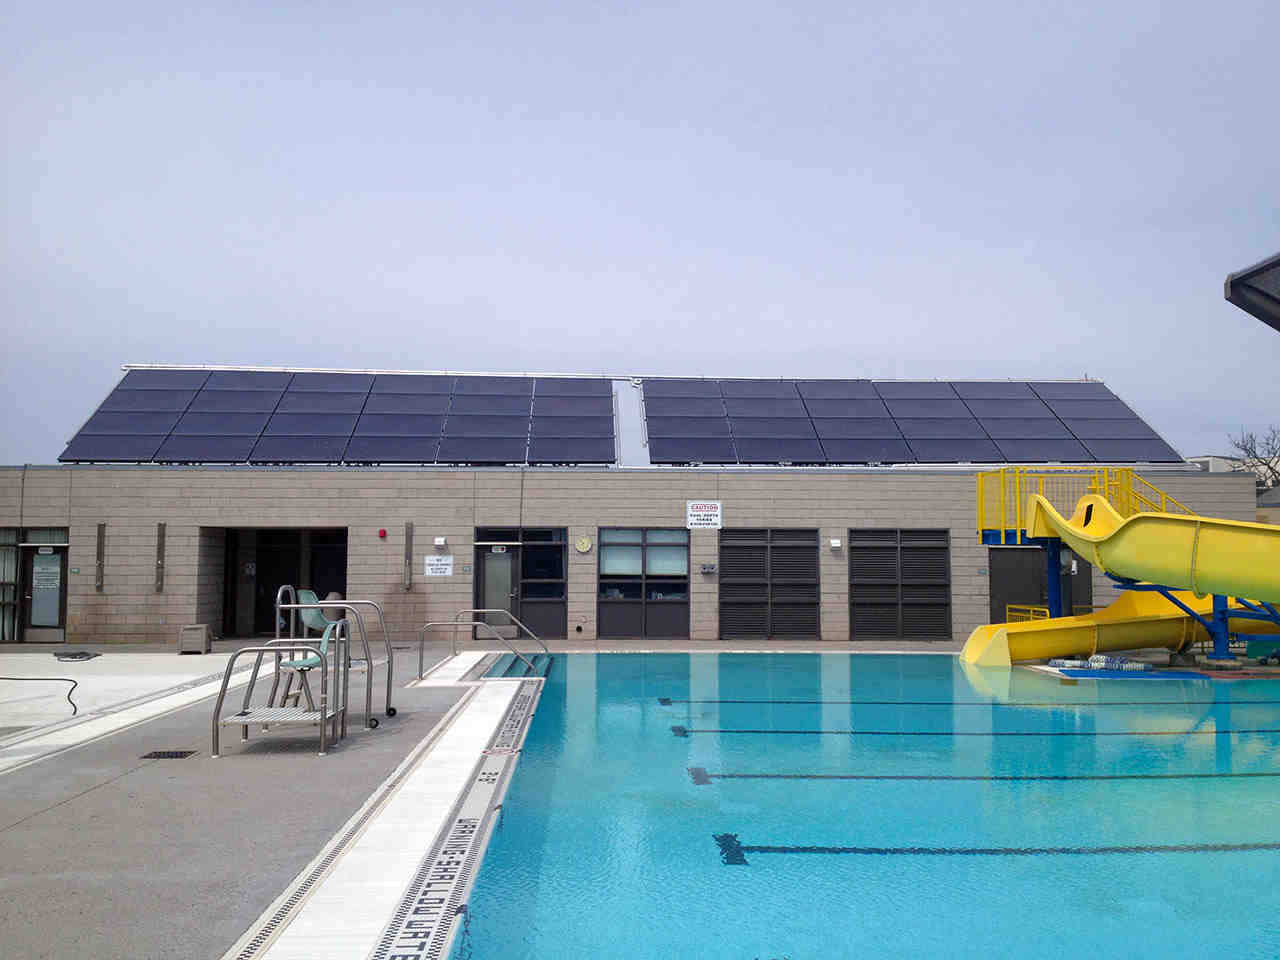 Does solar pool heating work in winter?